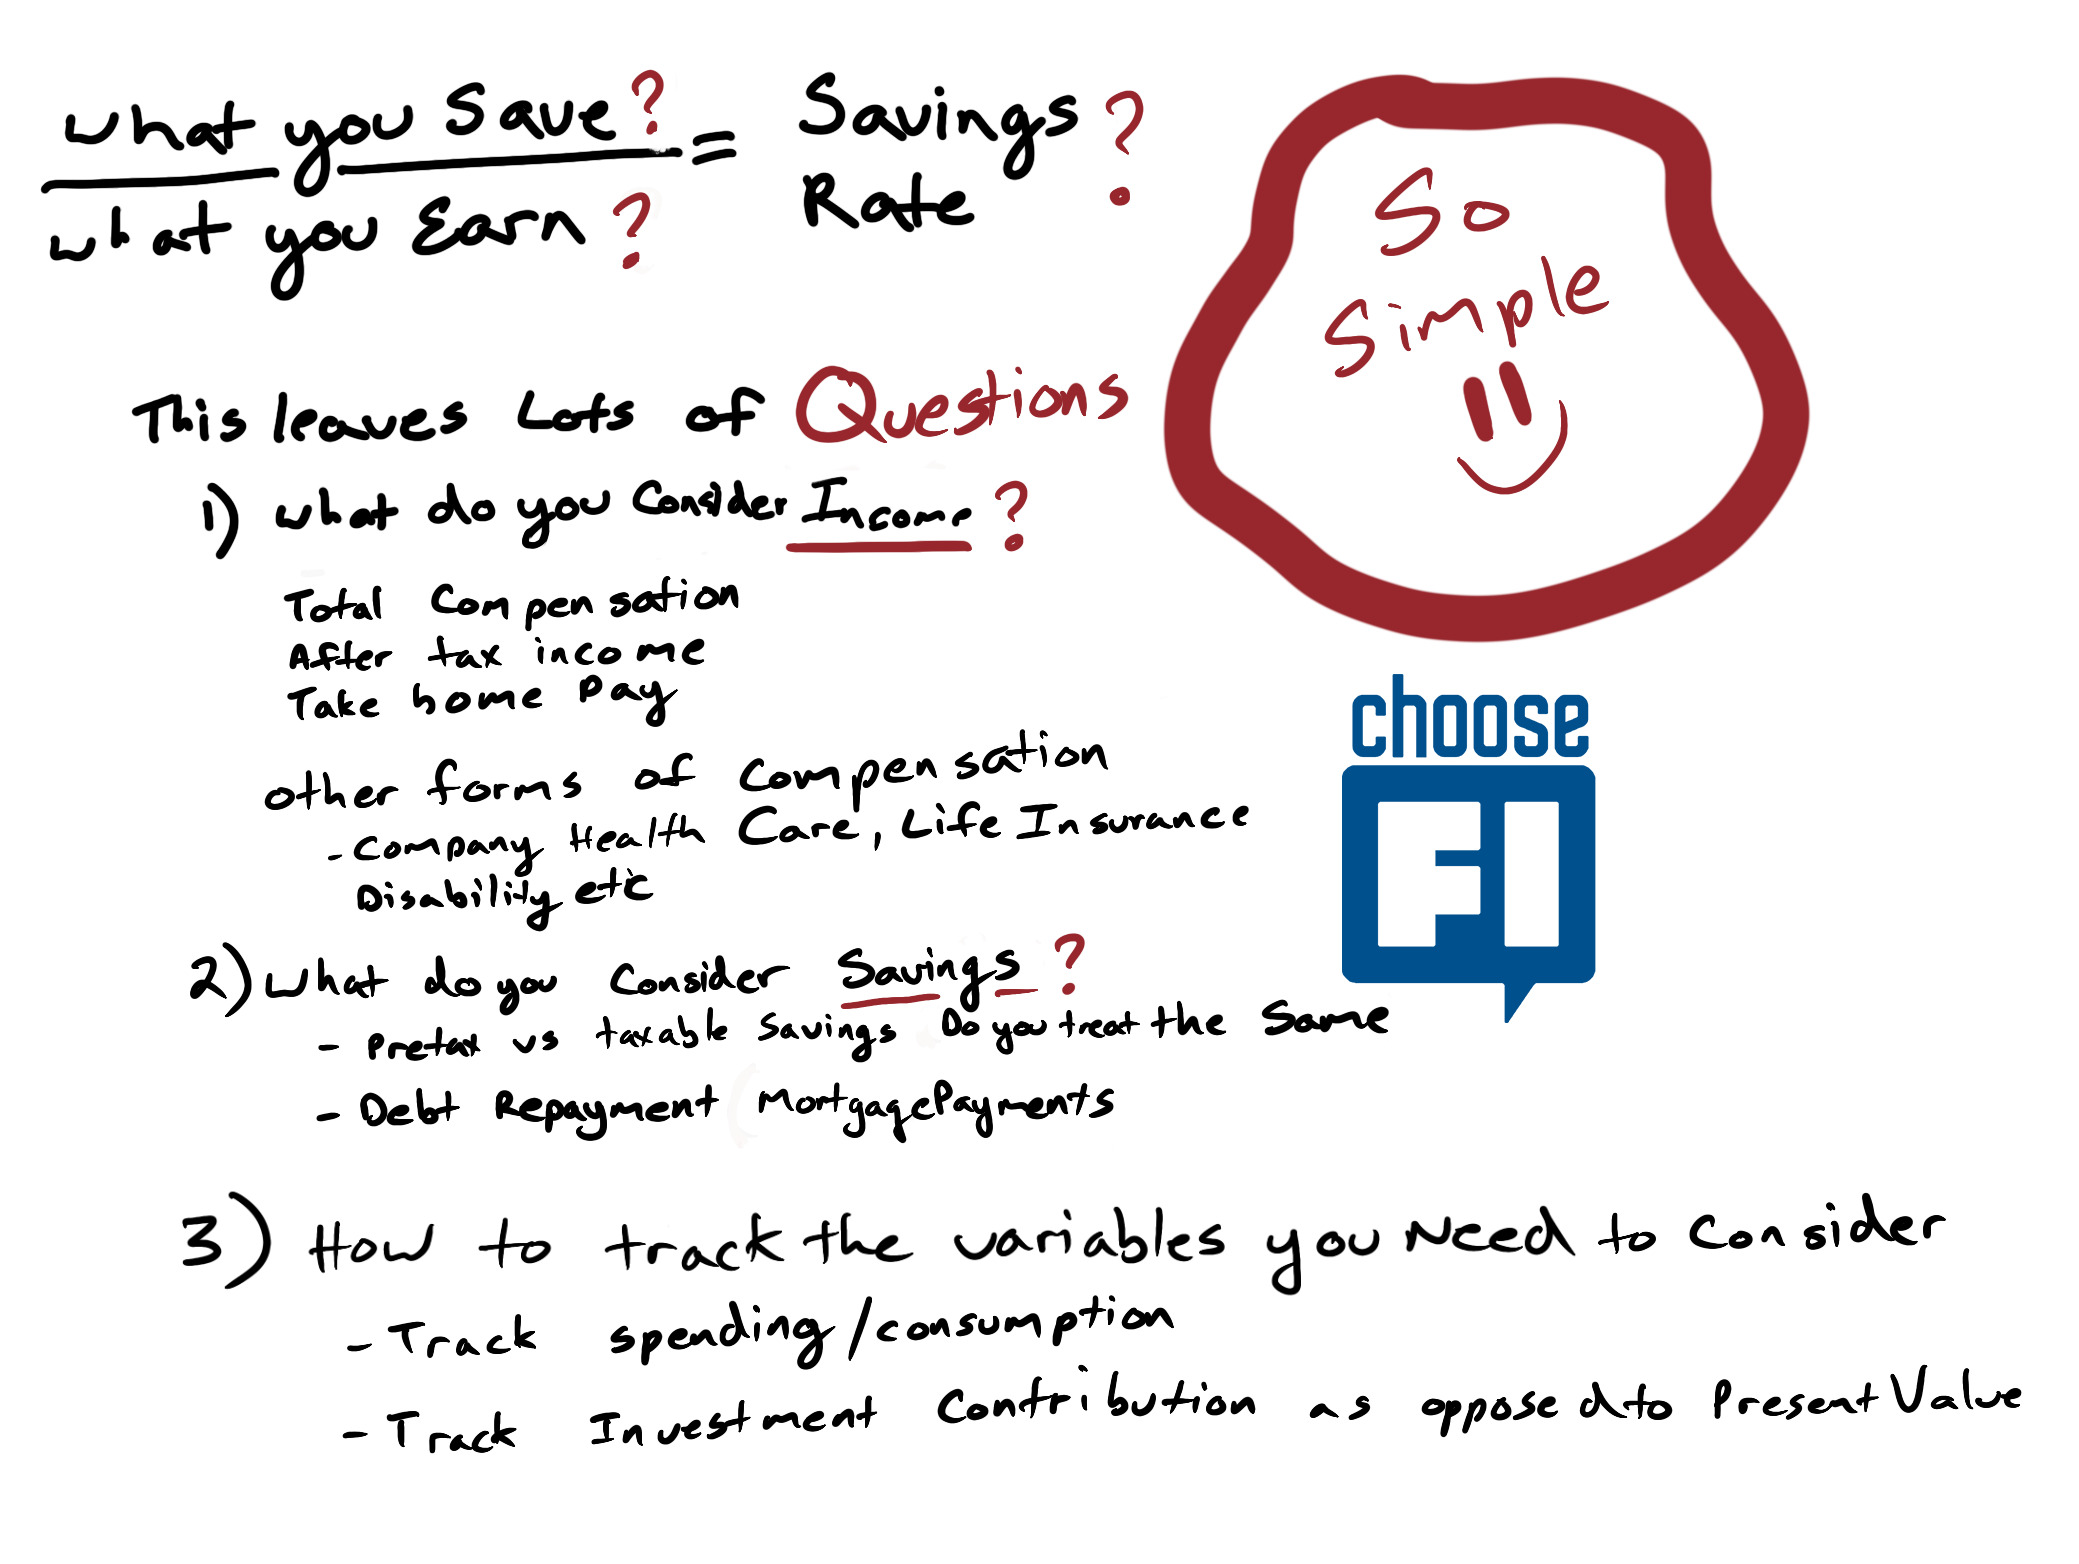 ChooseFI How to Calculate Savings rate